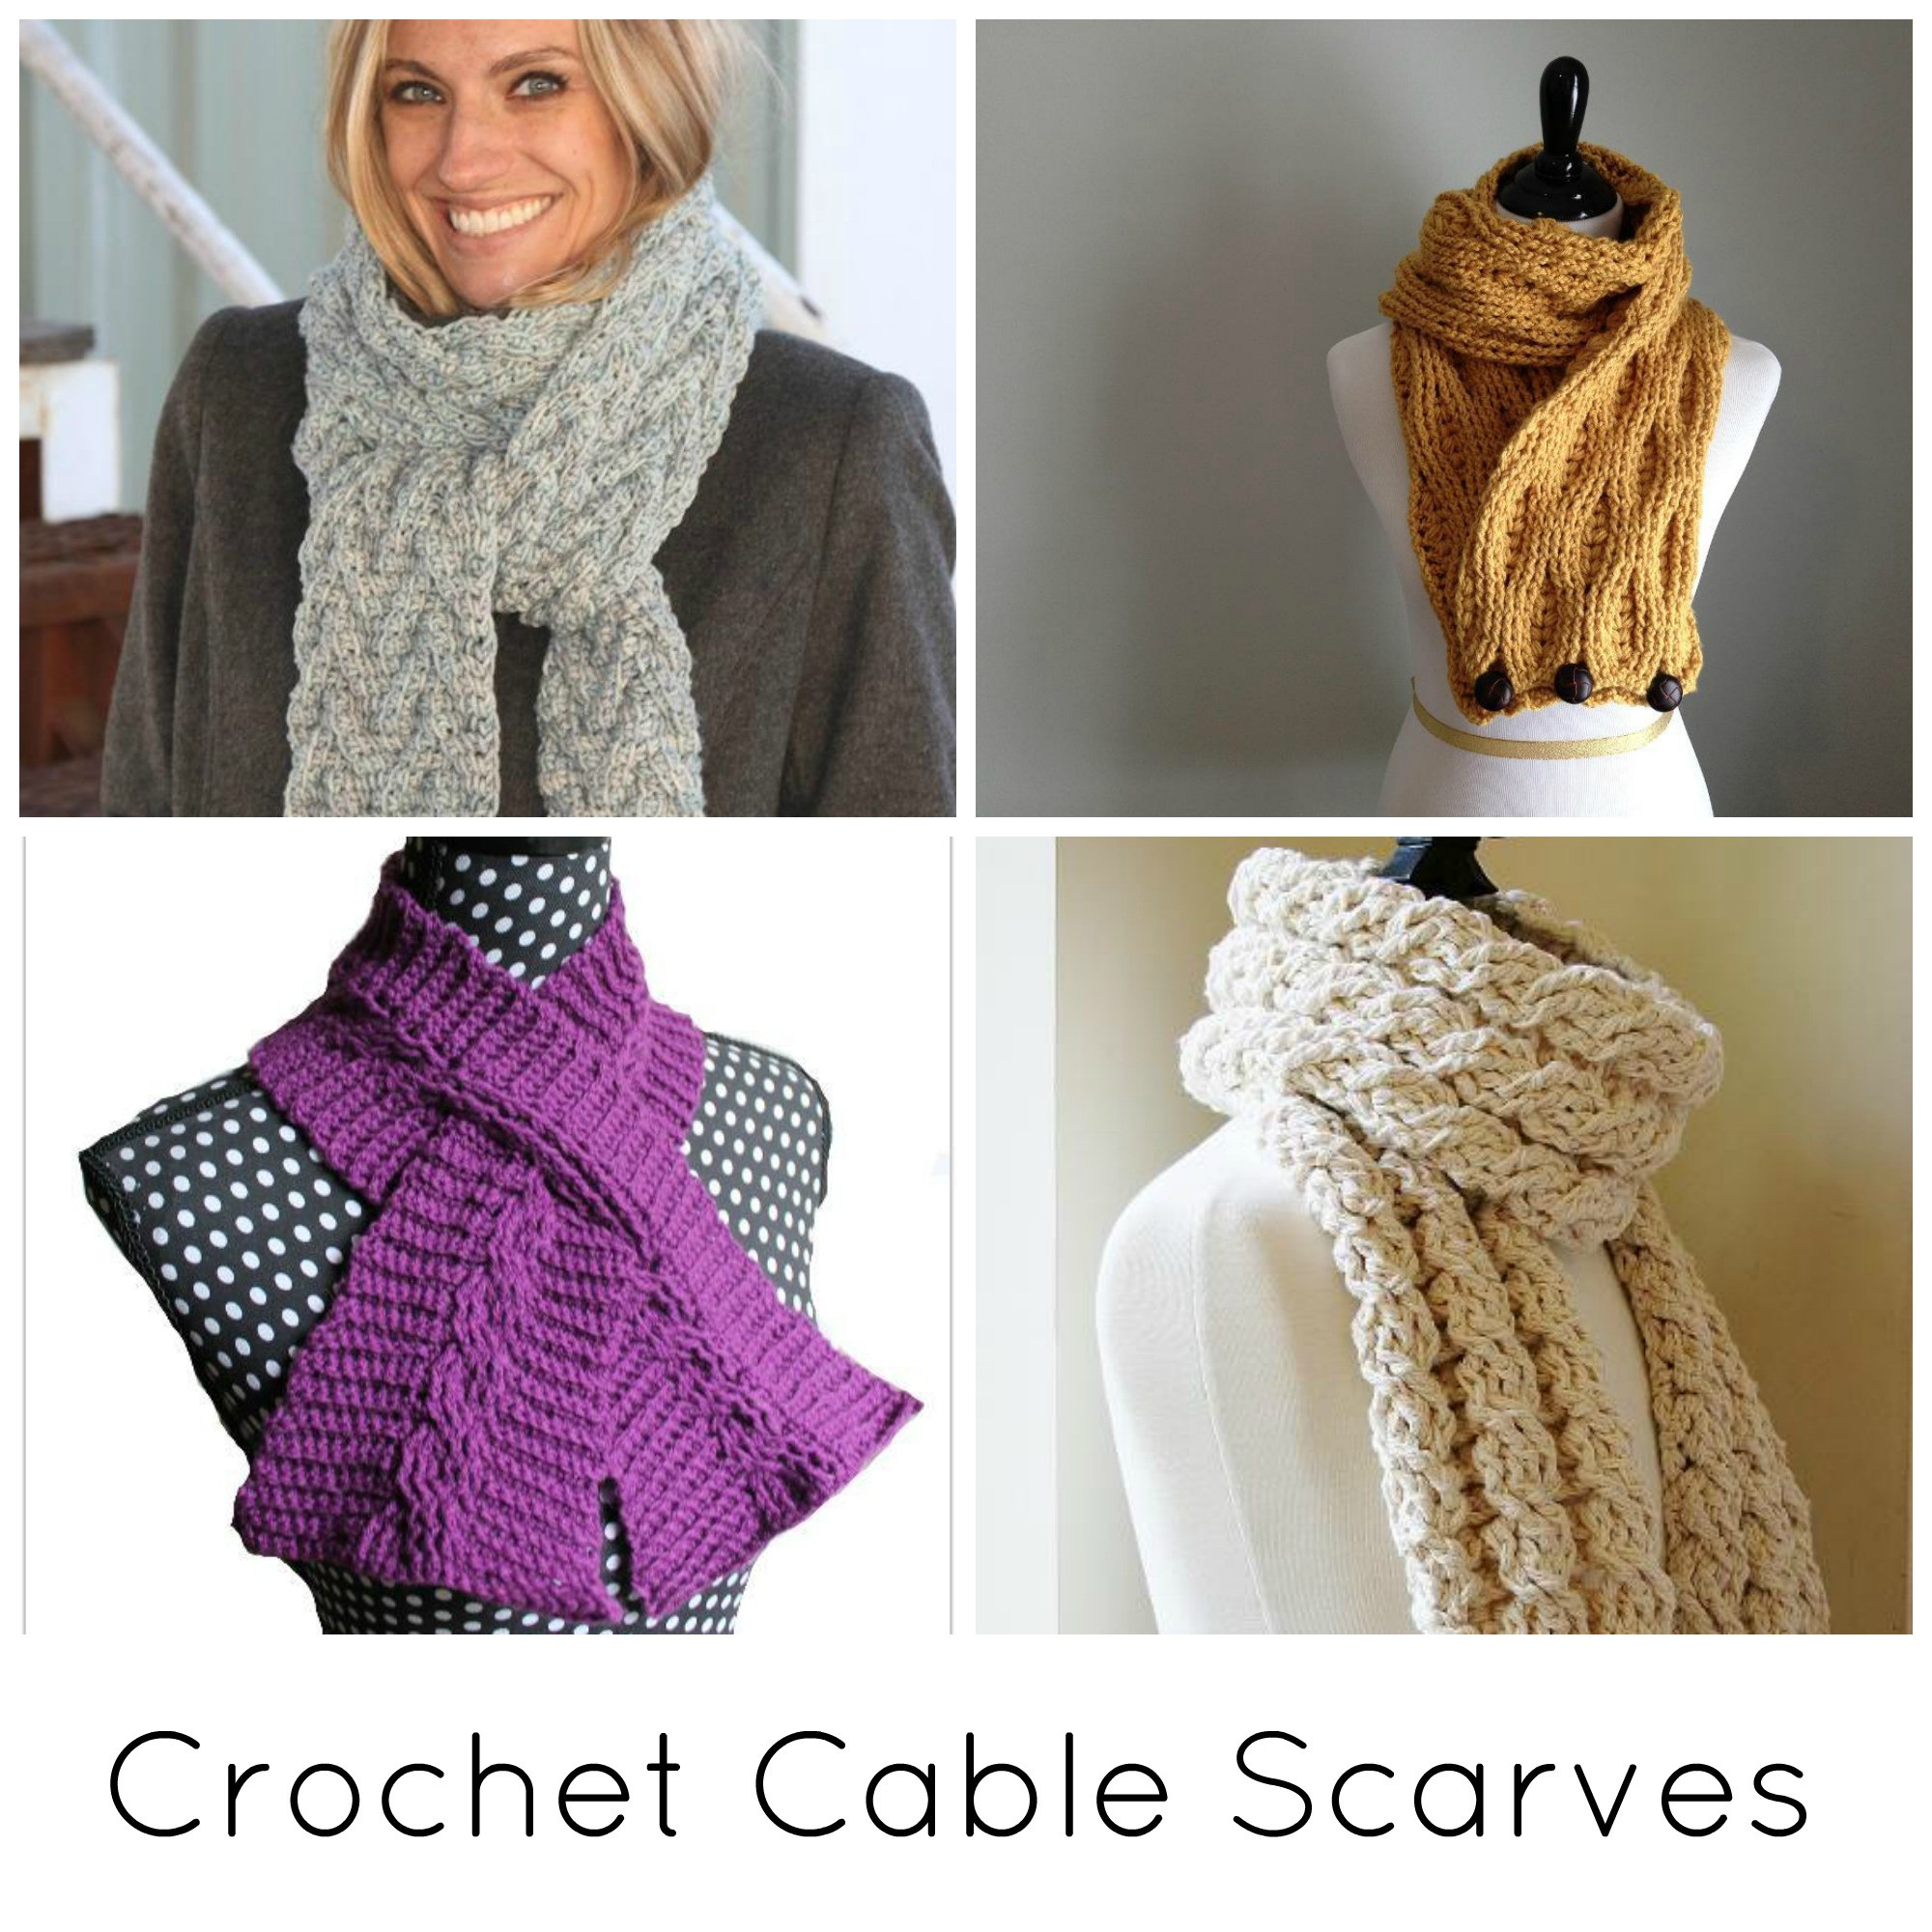 Crochet Cable Pattern Awesome Crochet Cable Scarf Patterns 10 Projects You Ll Love Of Perfect 40 Ideas Crochet Cable Pattern